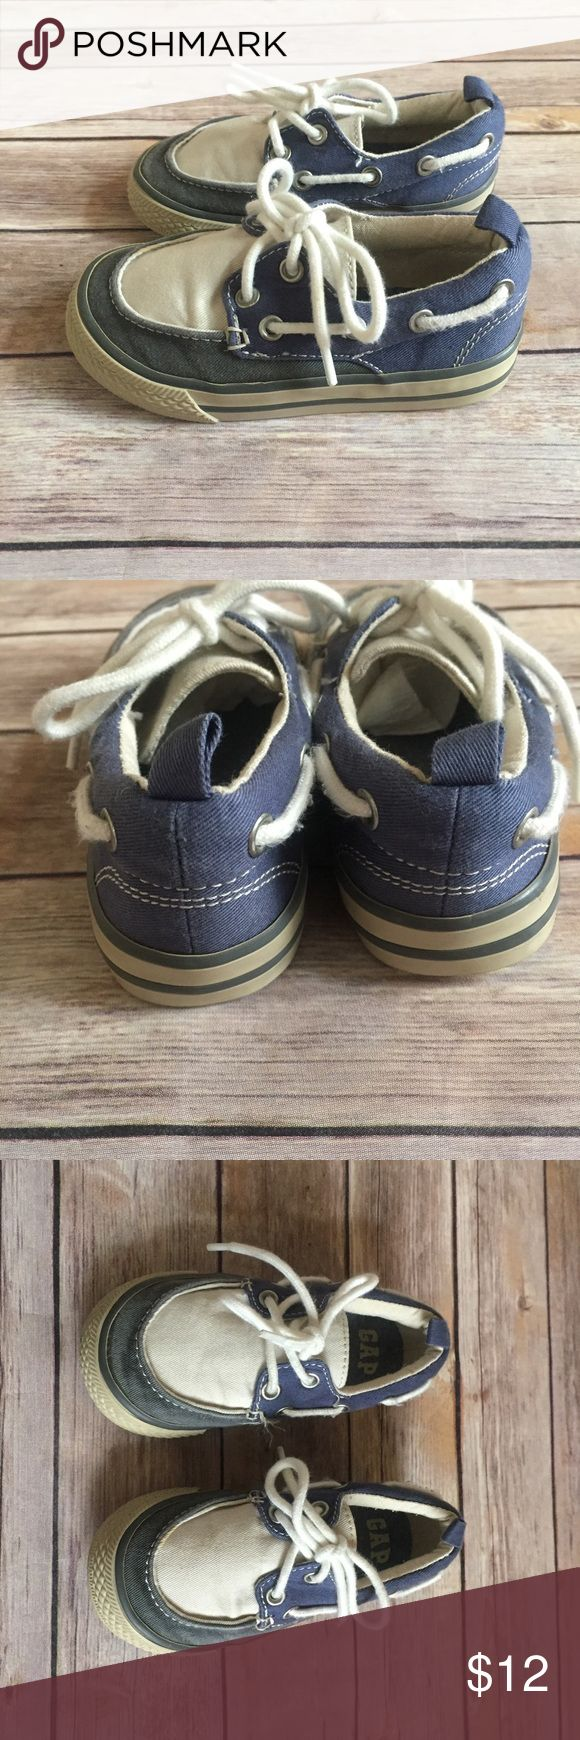 Baby Gap boat shoes Size 8 toddler boat shoes by Baby Gap in VGUC.  Blue and cream.  Perfect for spring. GAP Shoes